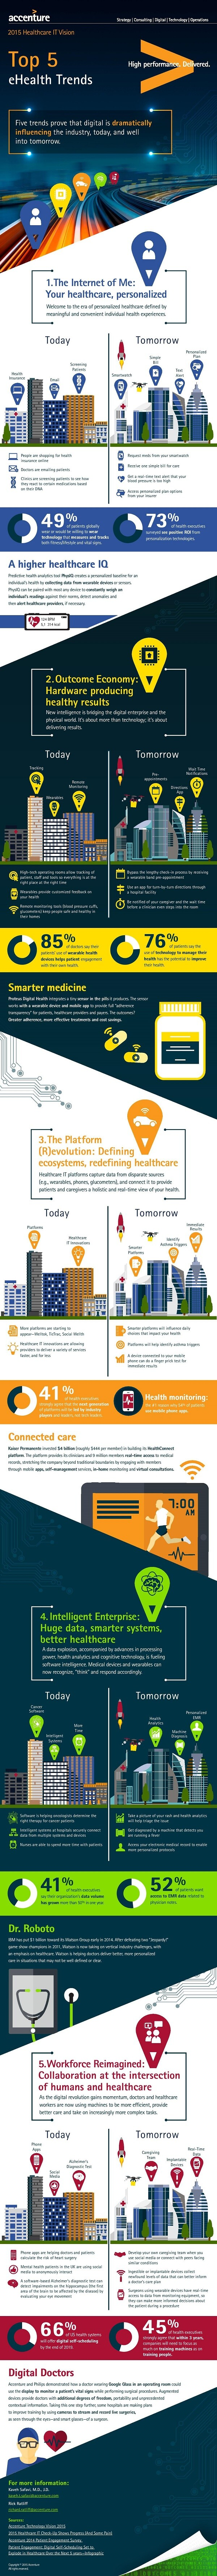 Healthcare_Technology_Vision_2015_Infographic-page-001.jpg